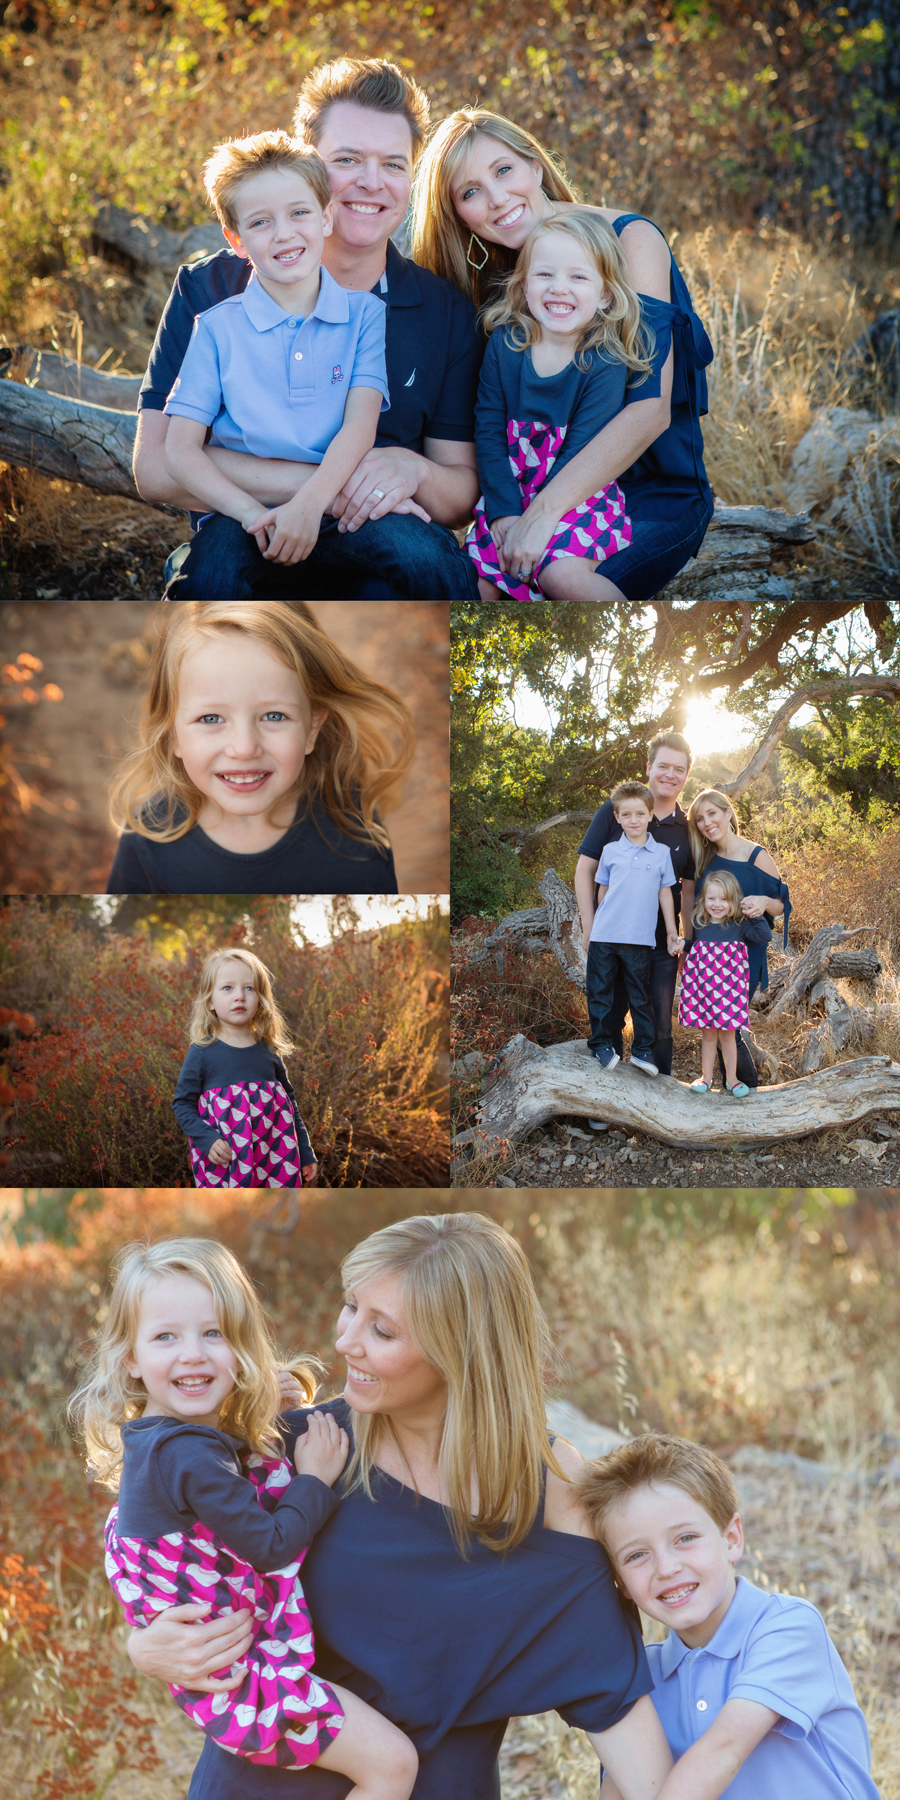 Family Photographer in Ventura County, California